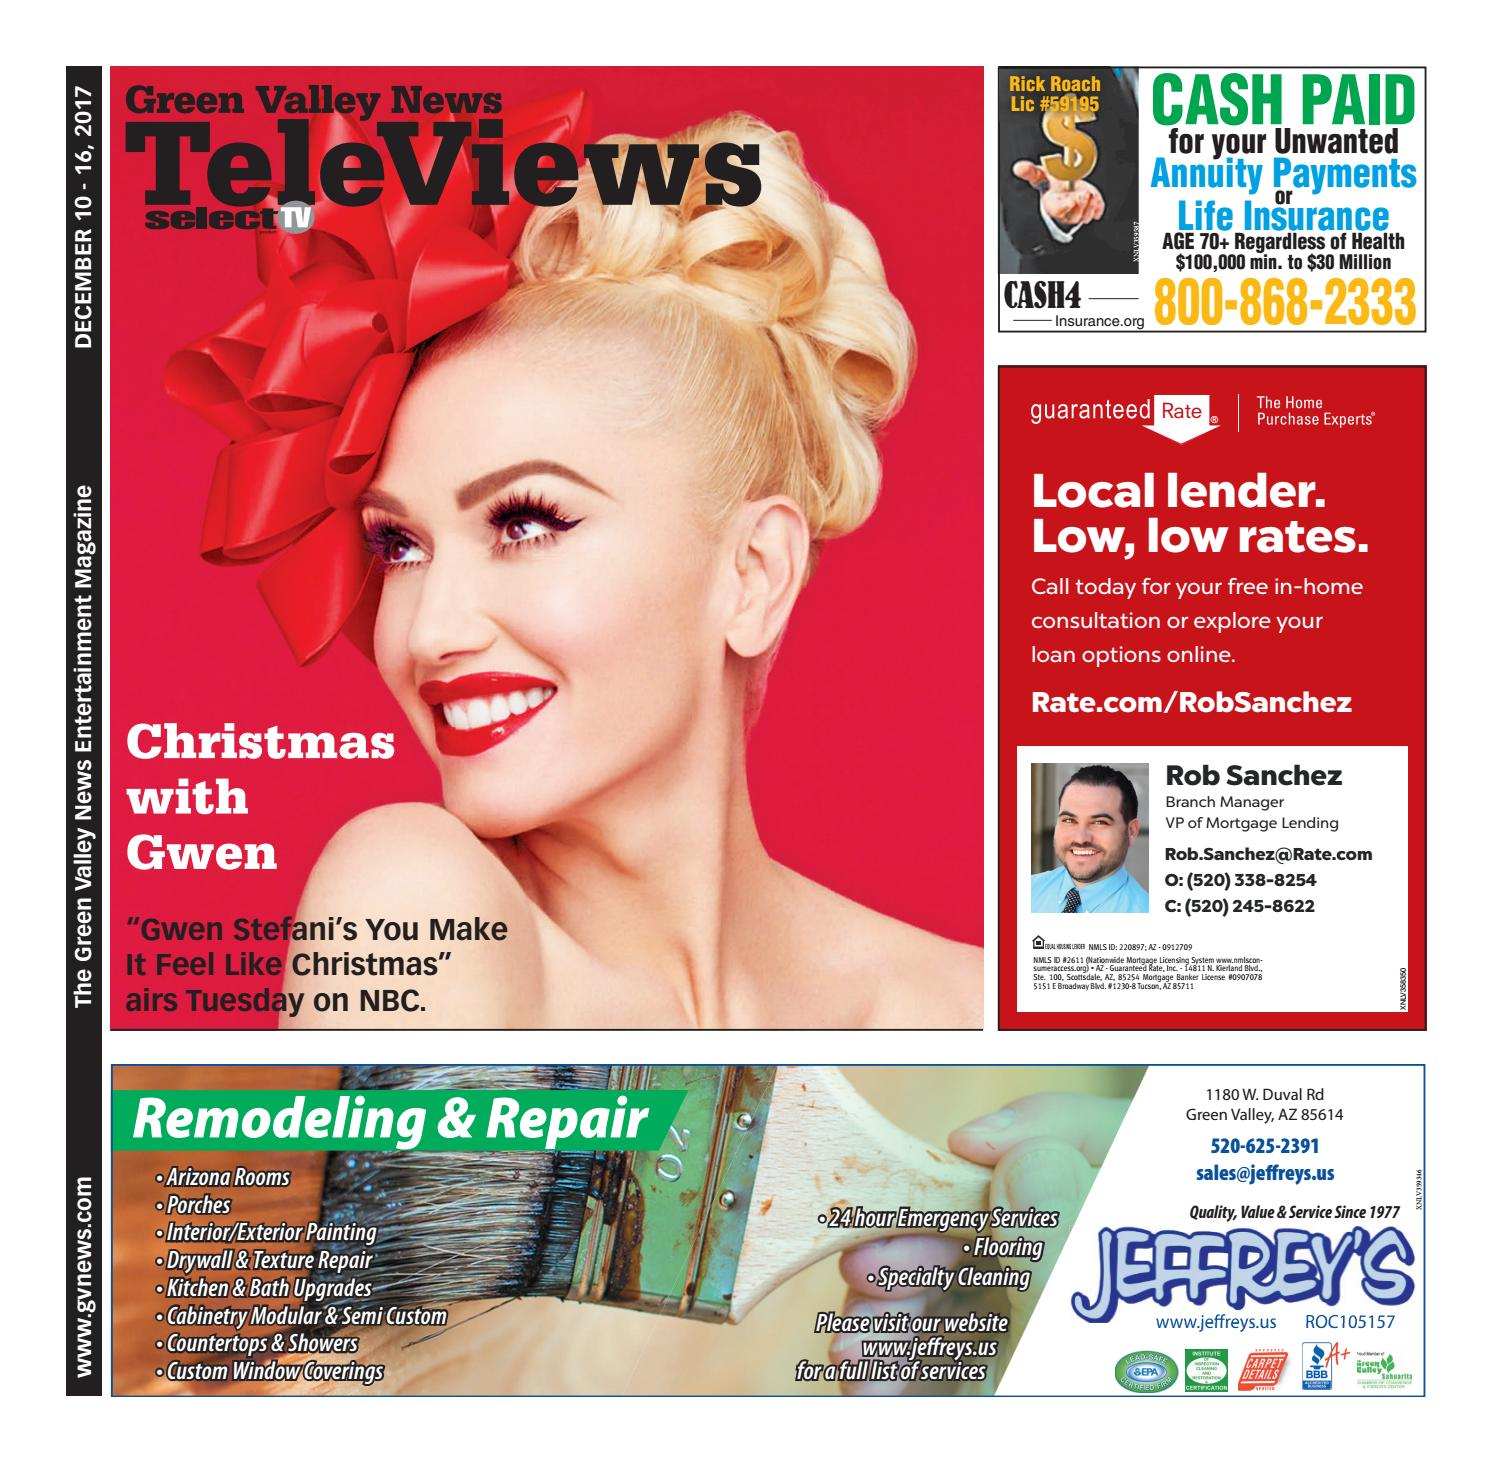 Televiews: Sunday, December 10, 2017 by Wick Communications